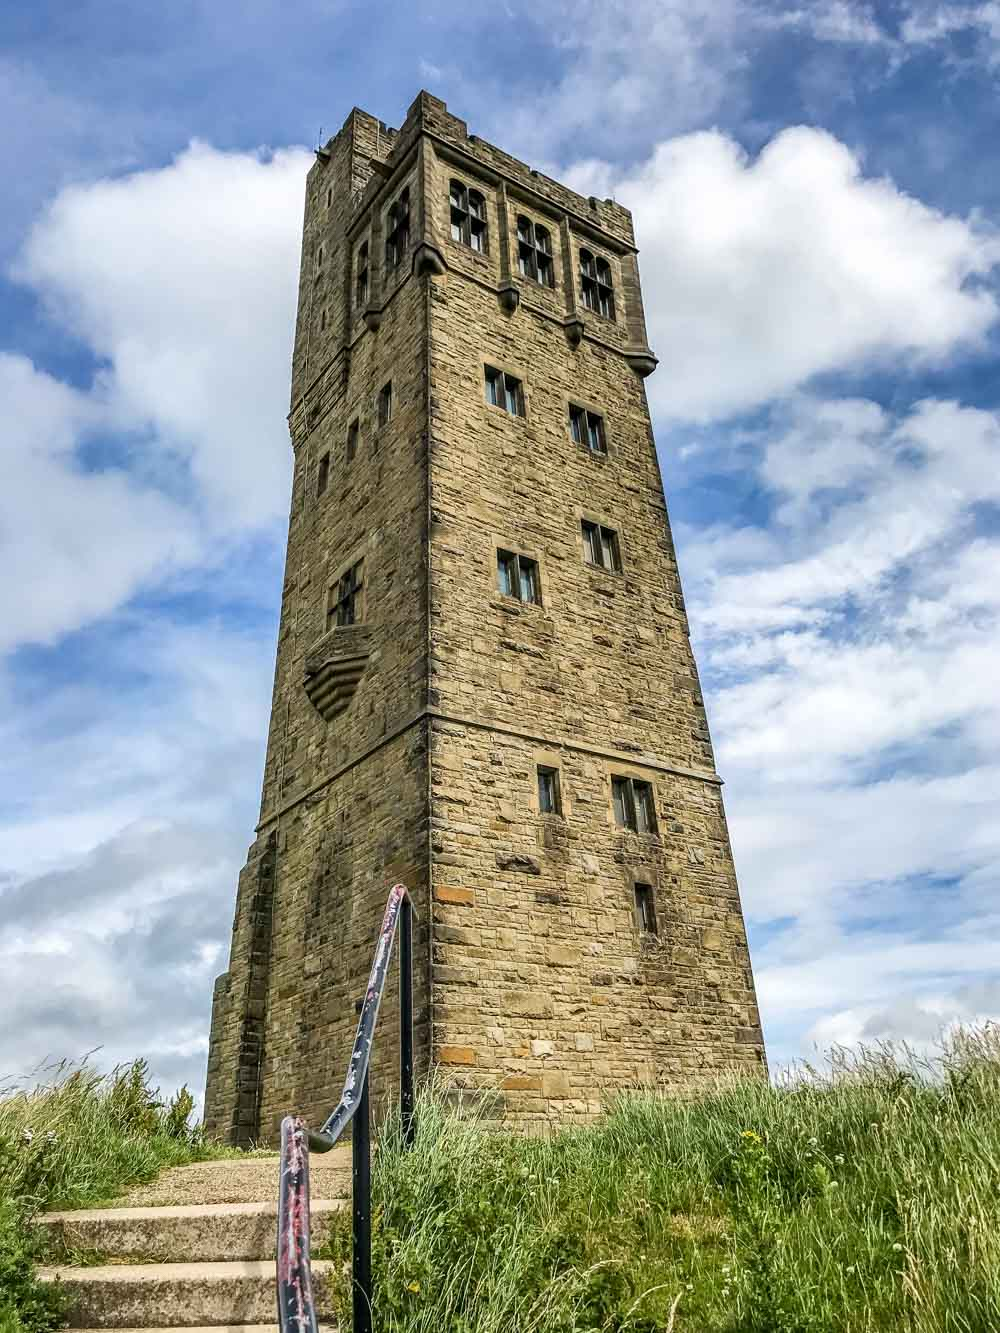 14-Victoria-Tower The Holme Valley Circular Walk - West Yorkshire